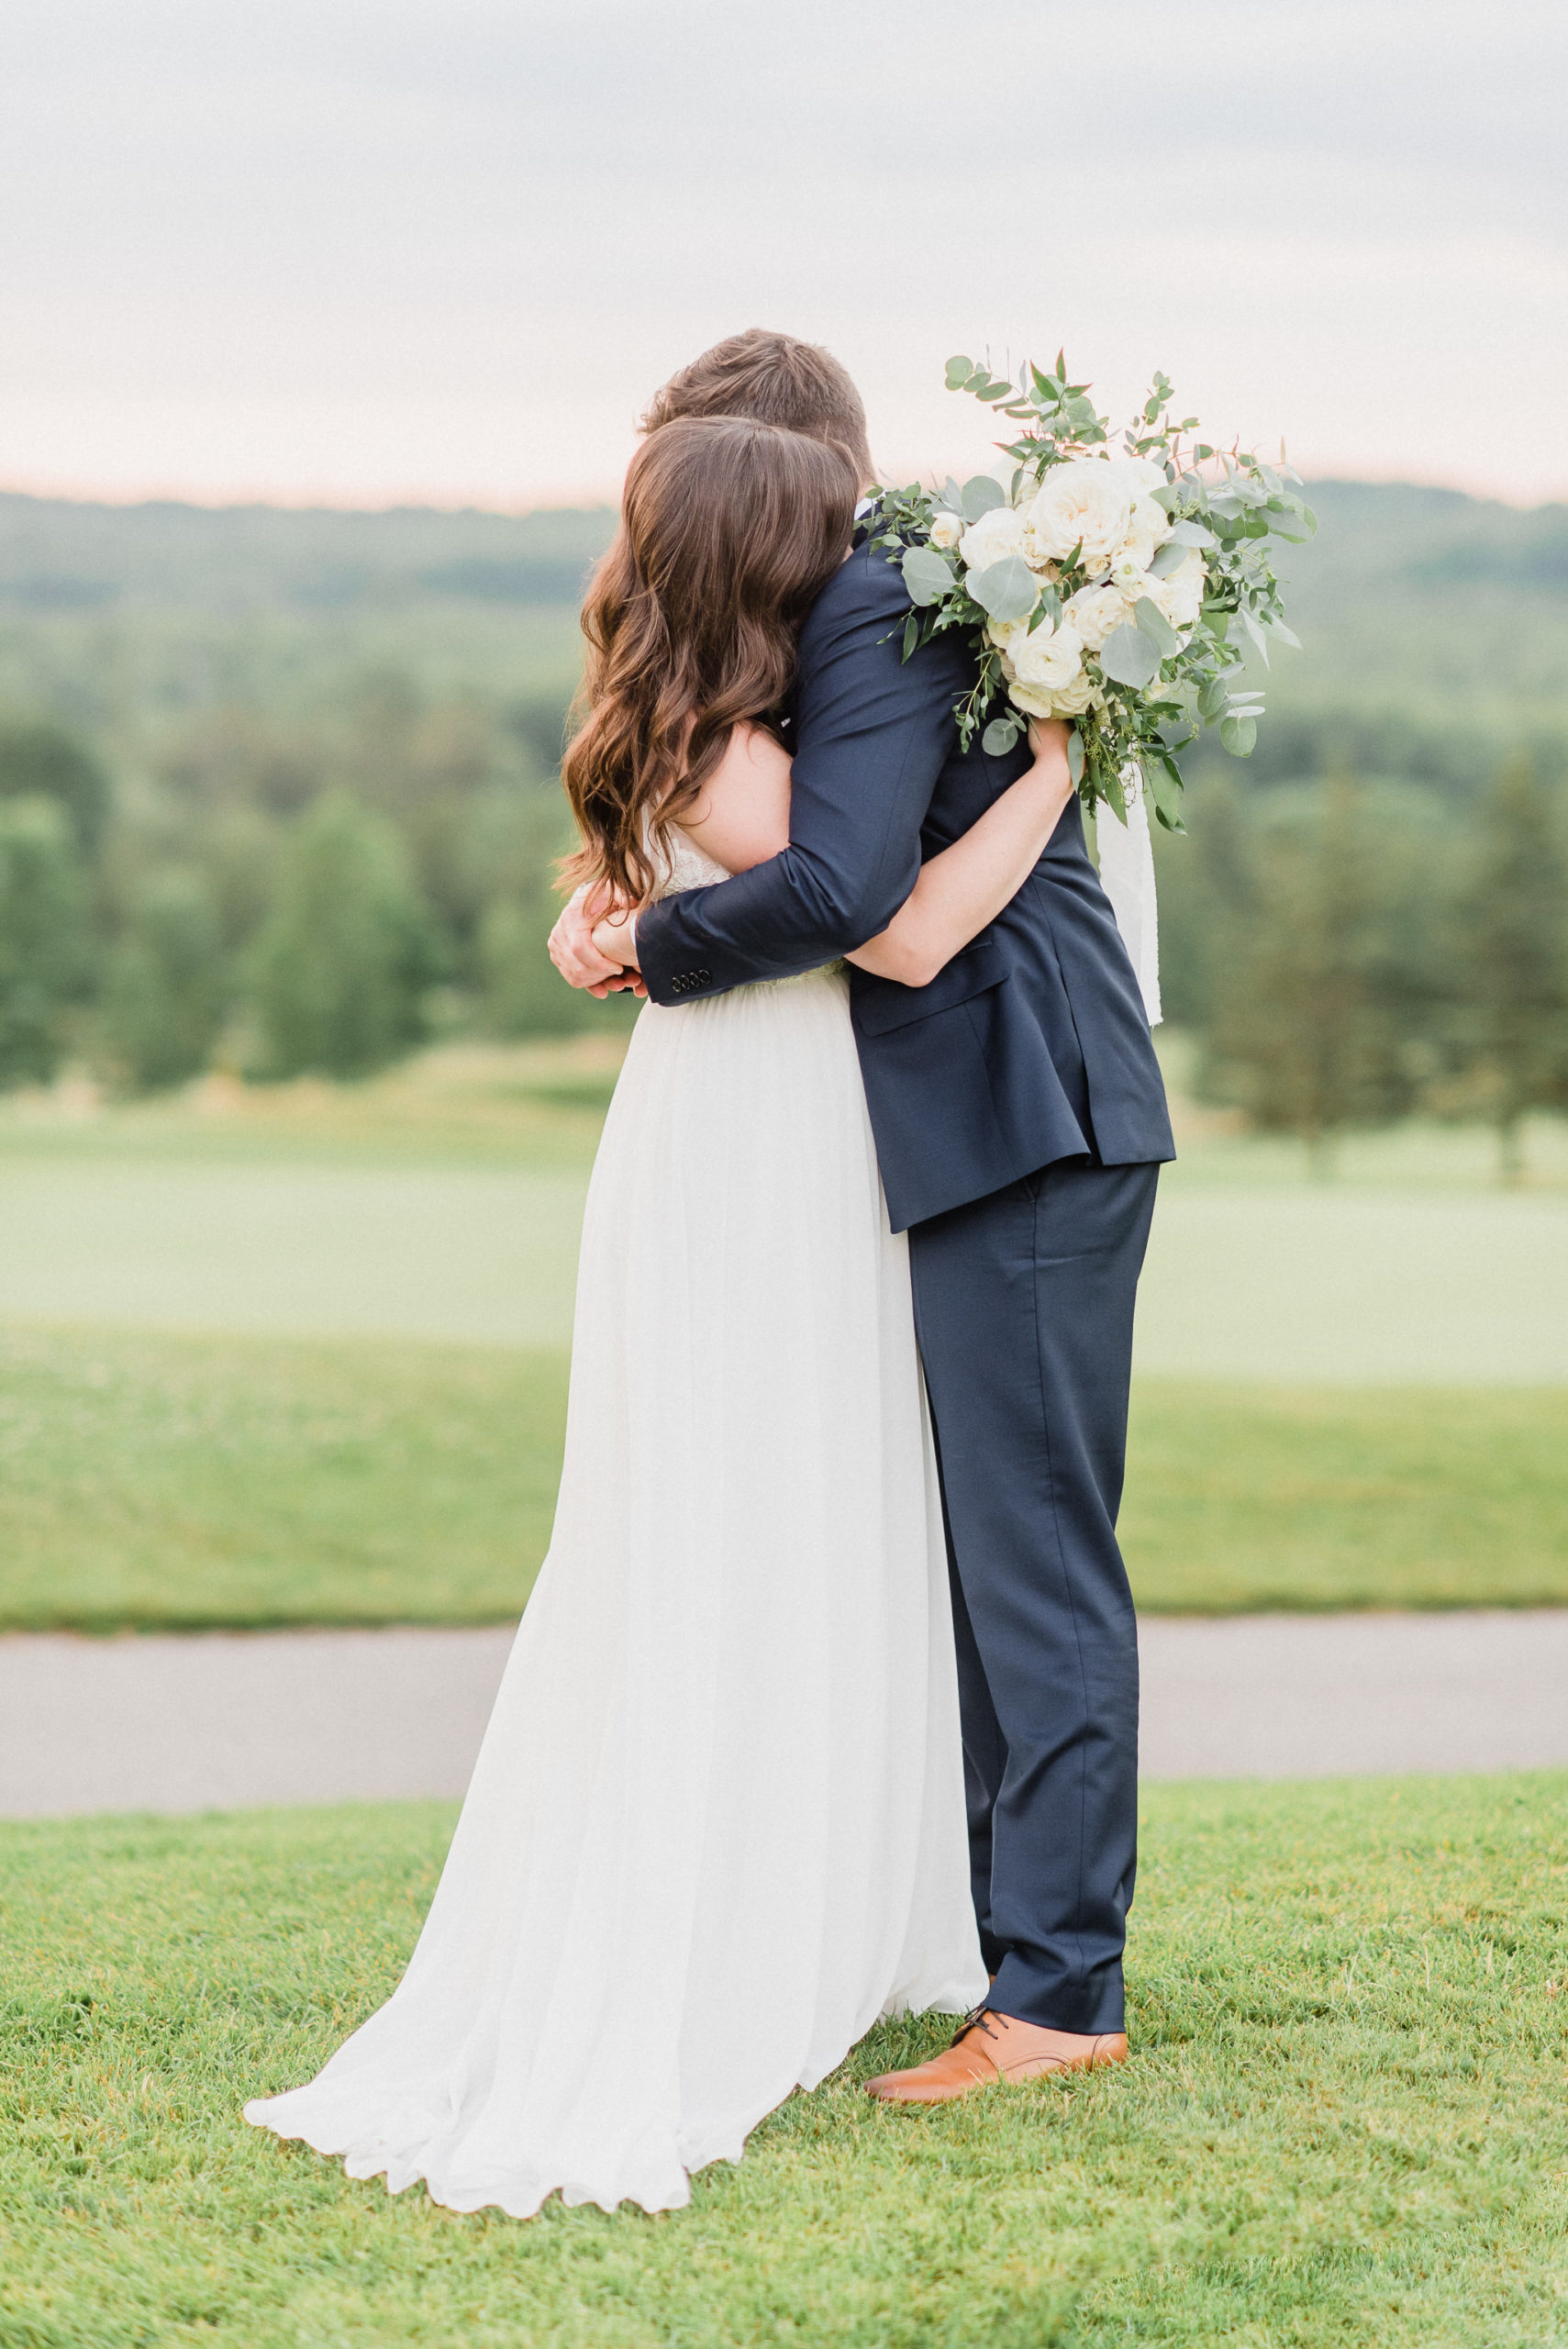 Sunset Portraits at Barrie Country Club by Jenn Kavanagh